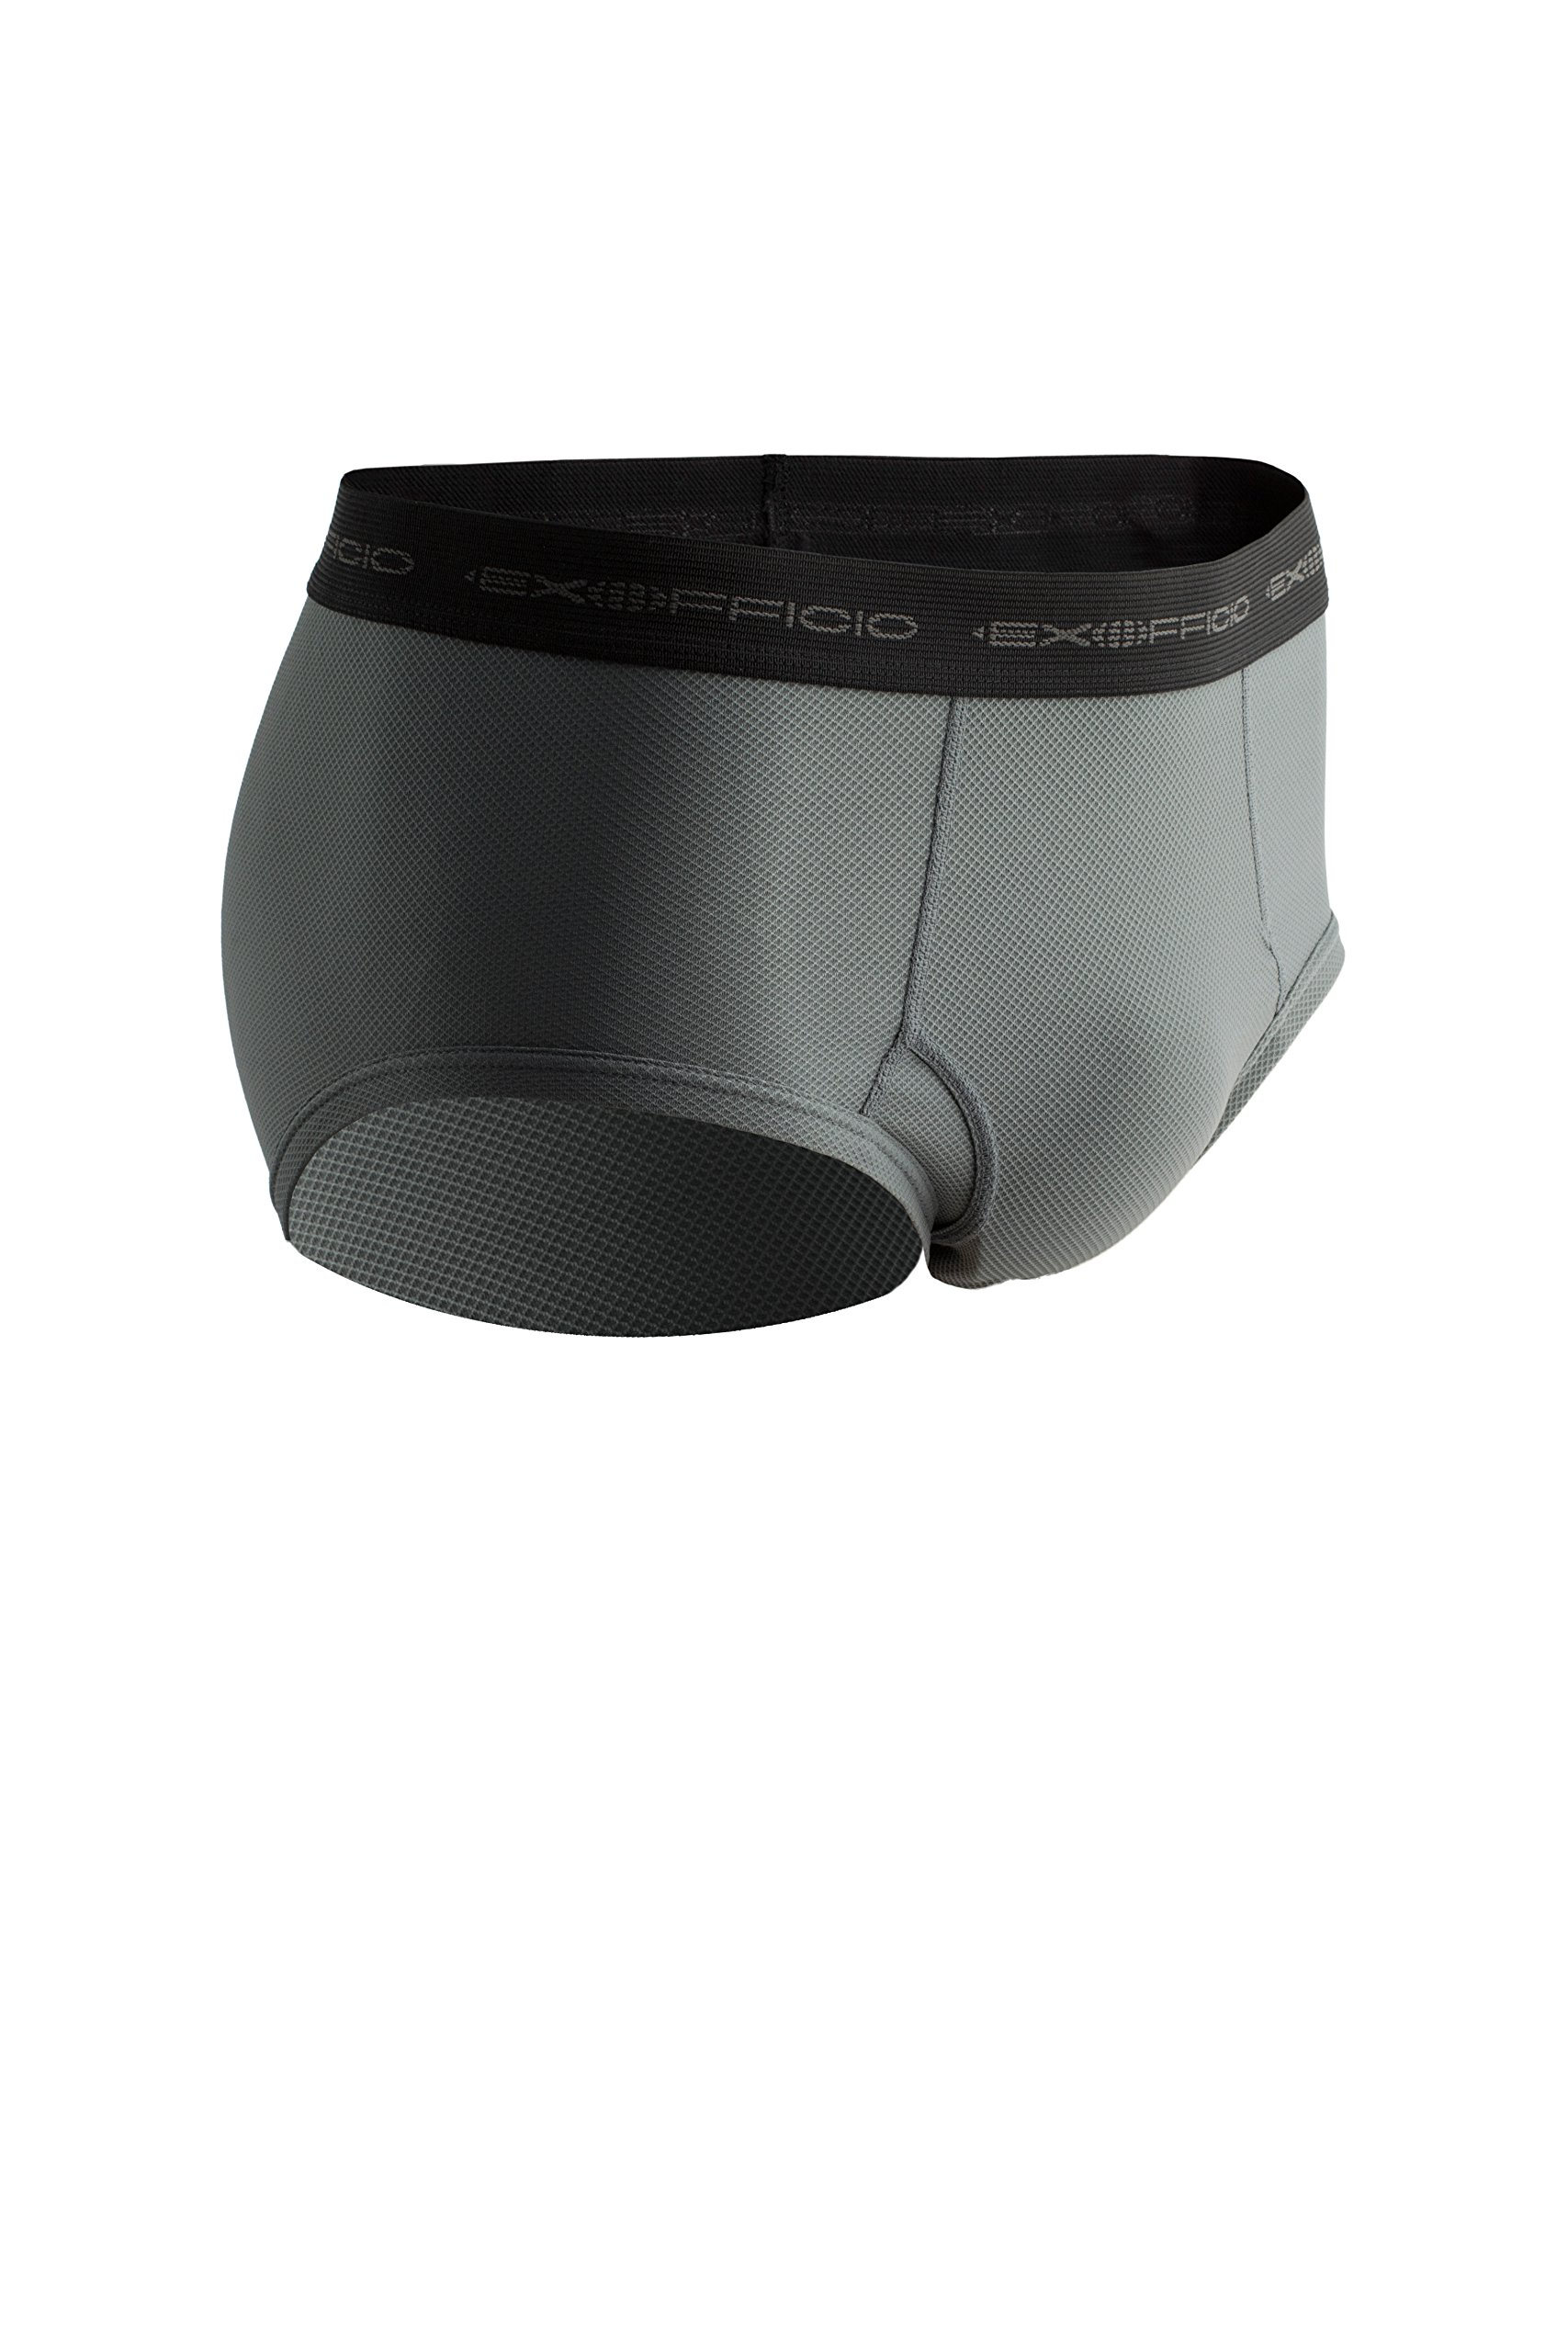 ExOfficio Men's Give-N-Go Brief (2 Pack - X-Large, Charcoal)